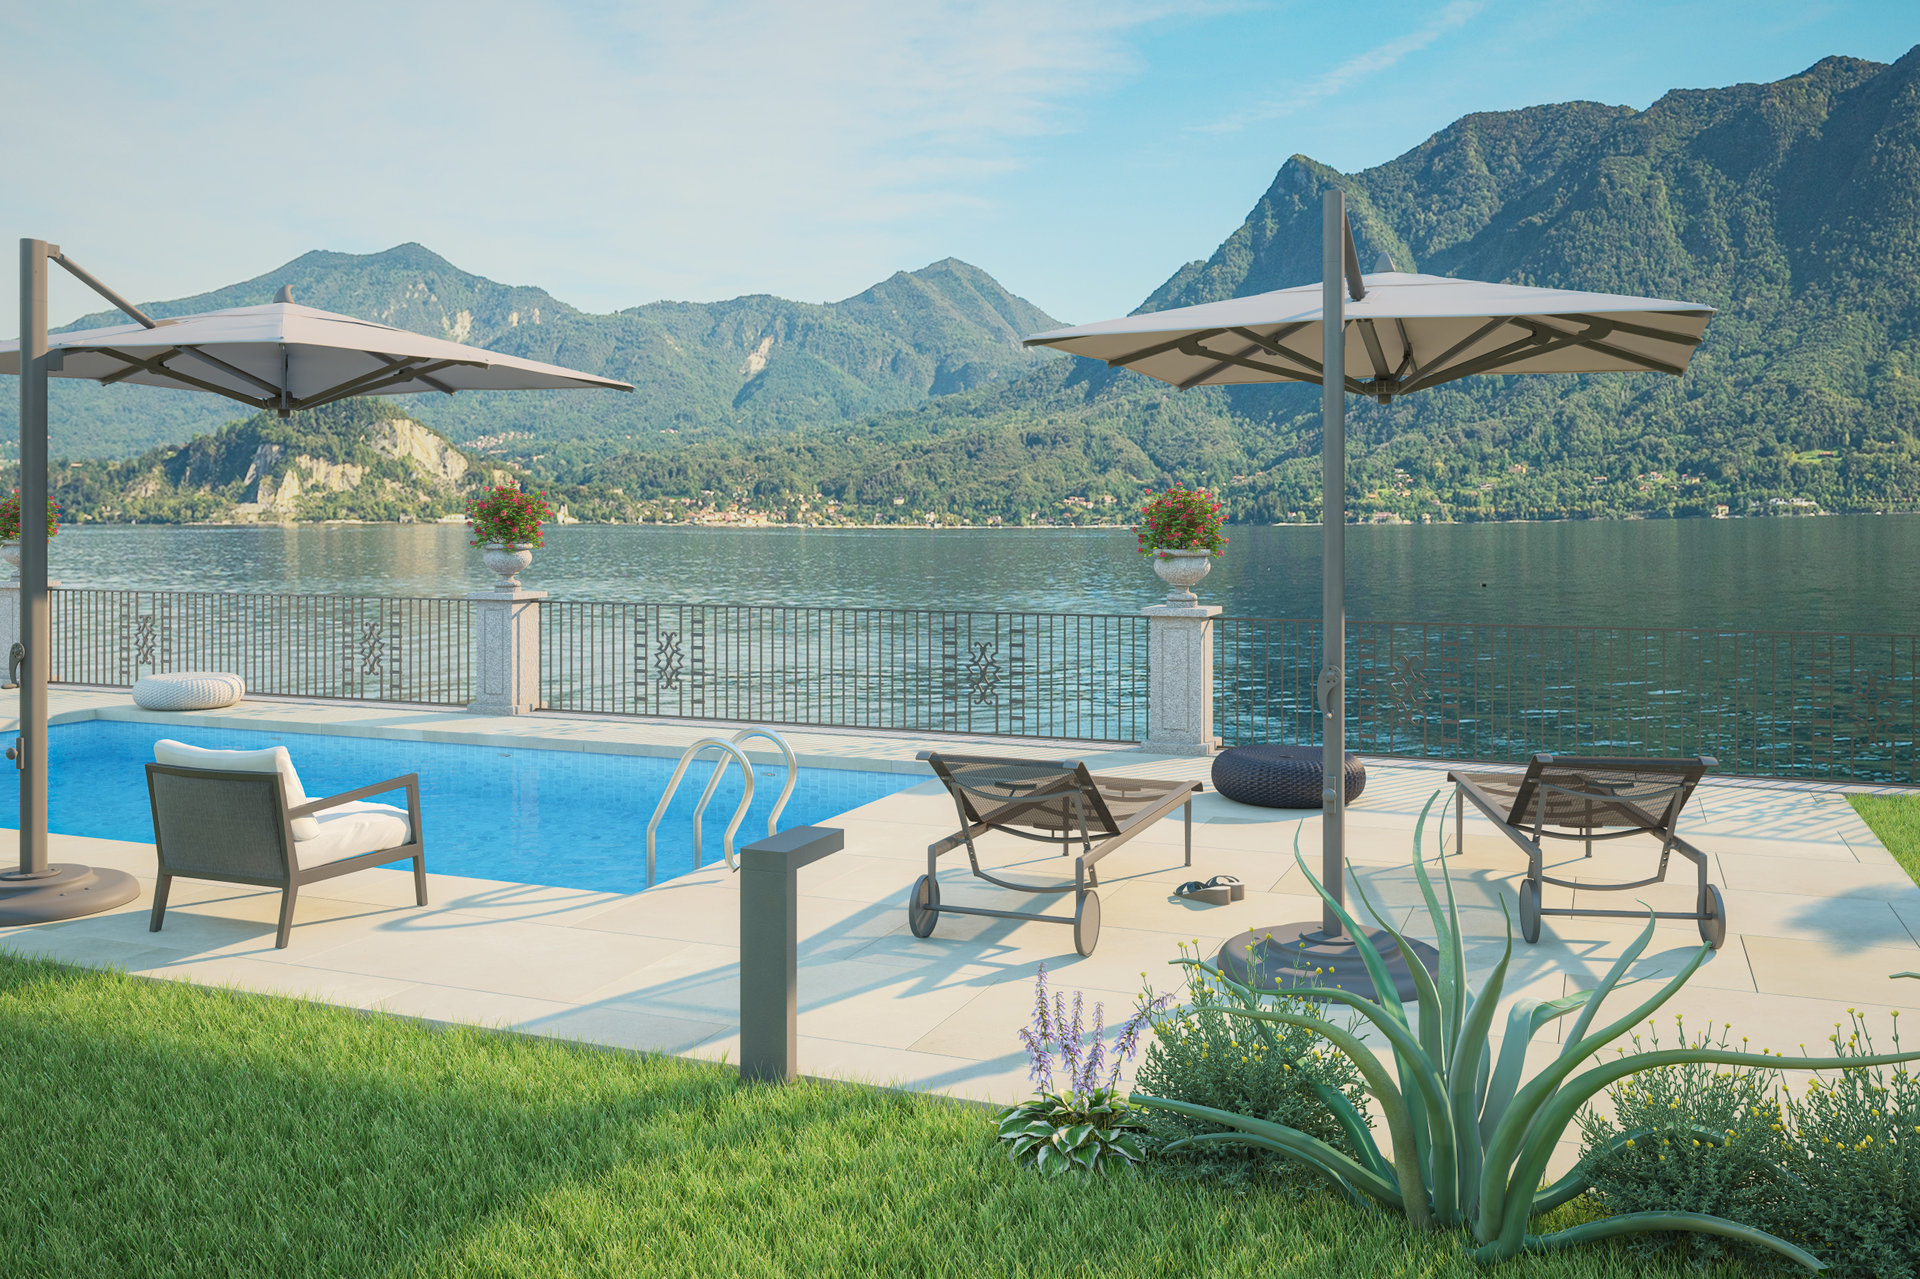 Period villa pieds dans l'eau for sale in Ghiffa - lake view swimming pool